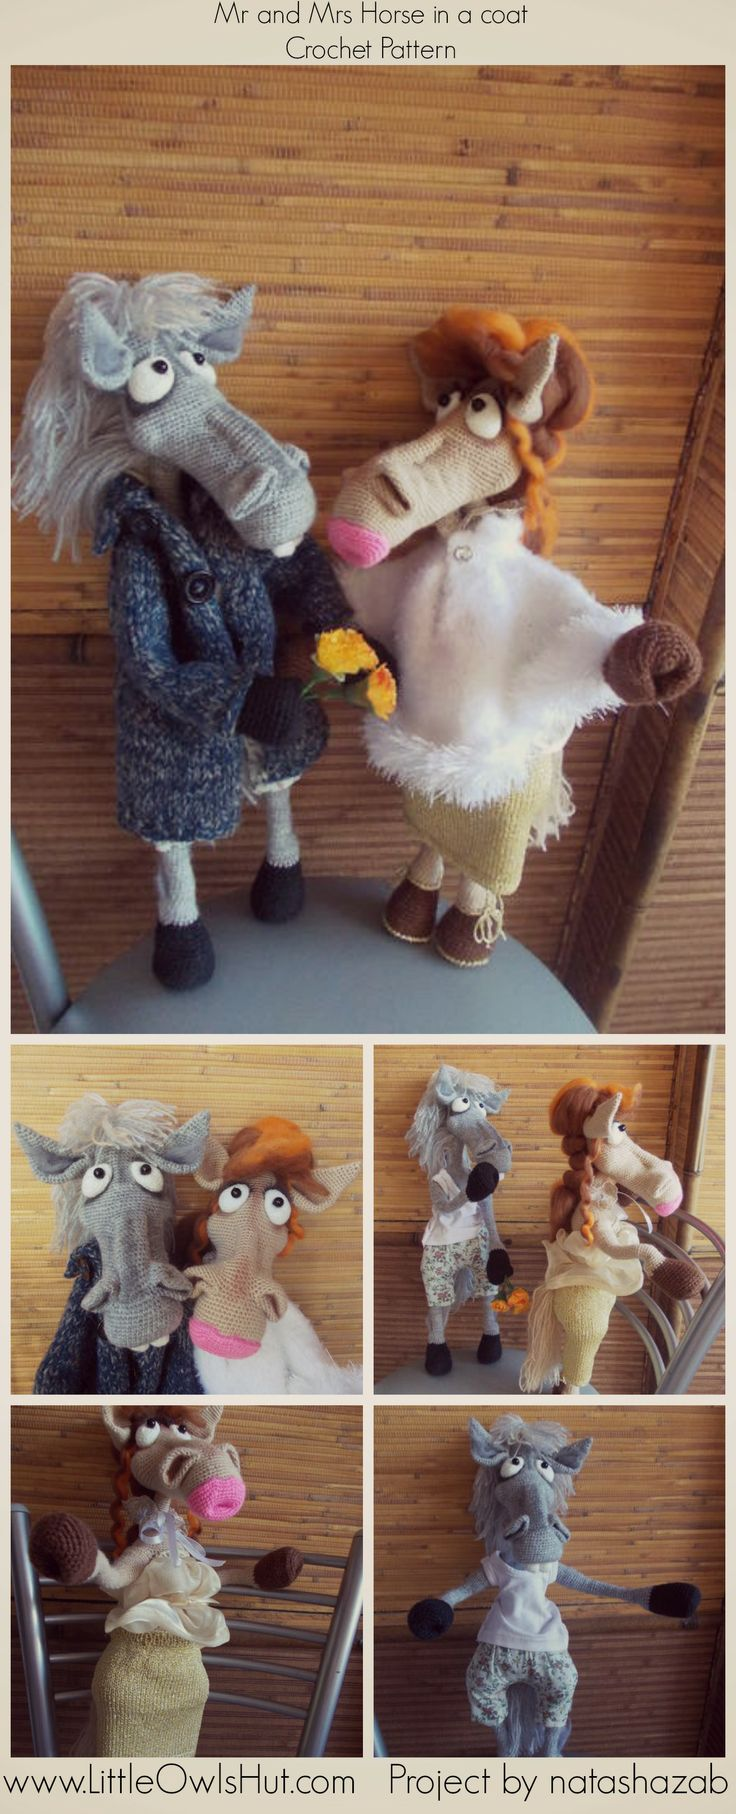 """Mr and Mrs Horse in a coat Crochet Pattern www.LittleOwlsHut.com  Project Mr and Mrs horse. """"Mr and Mrs horse"""" crochet pattern designed by Astashova for LittleOwlsHut was used to make this toy. Pattern is for an experienced crocheters. Coat is KNITTed not crochet. Toy has a wire frame inside but can't stand on its own. Look at our other horse projects pins for Ideas how to decorate you lovely toy. #LittleOwlsHut, #Amigurumi, #Astashova, #CrochetPattern, #Horse, #DIY, #Pattern, #Toy"""